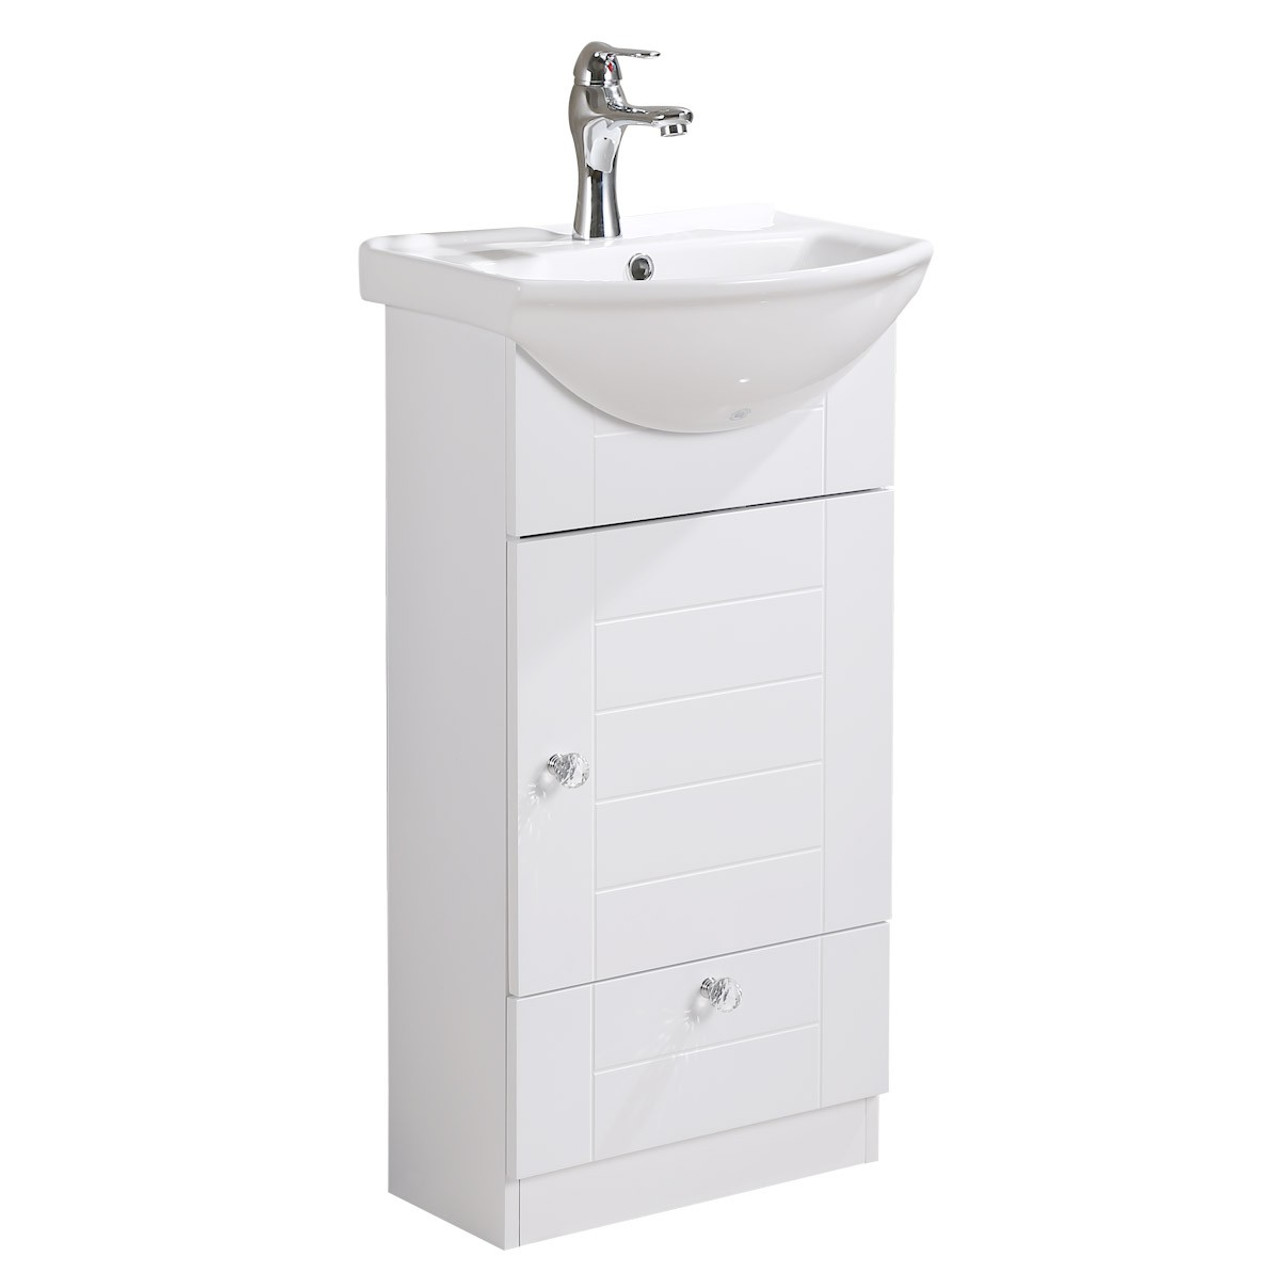 finest selection ef38d 4fa36 Lorixon LV-1001W White Bathroom Vanity Ceramic Sink White Cabinet with  Drawer 18inches Modern